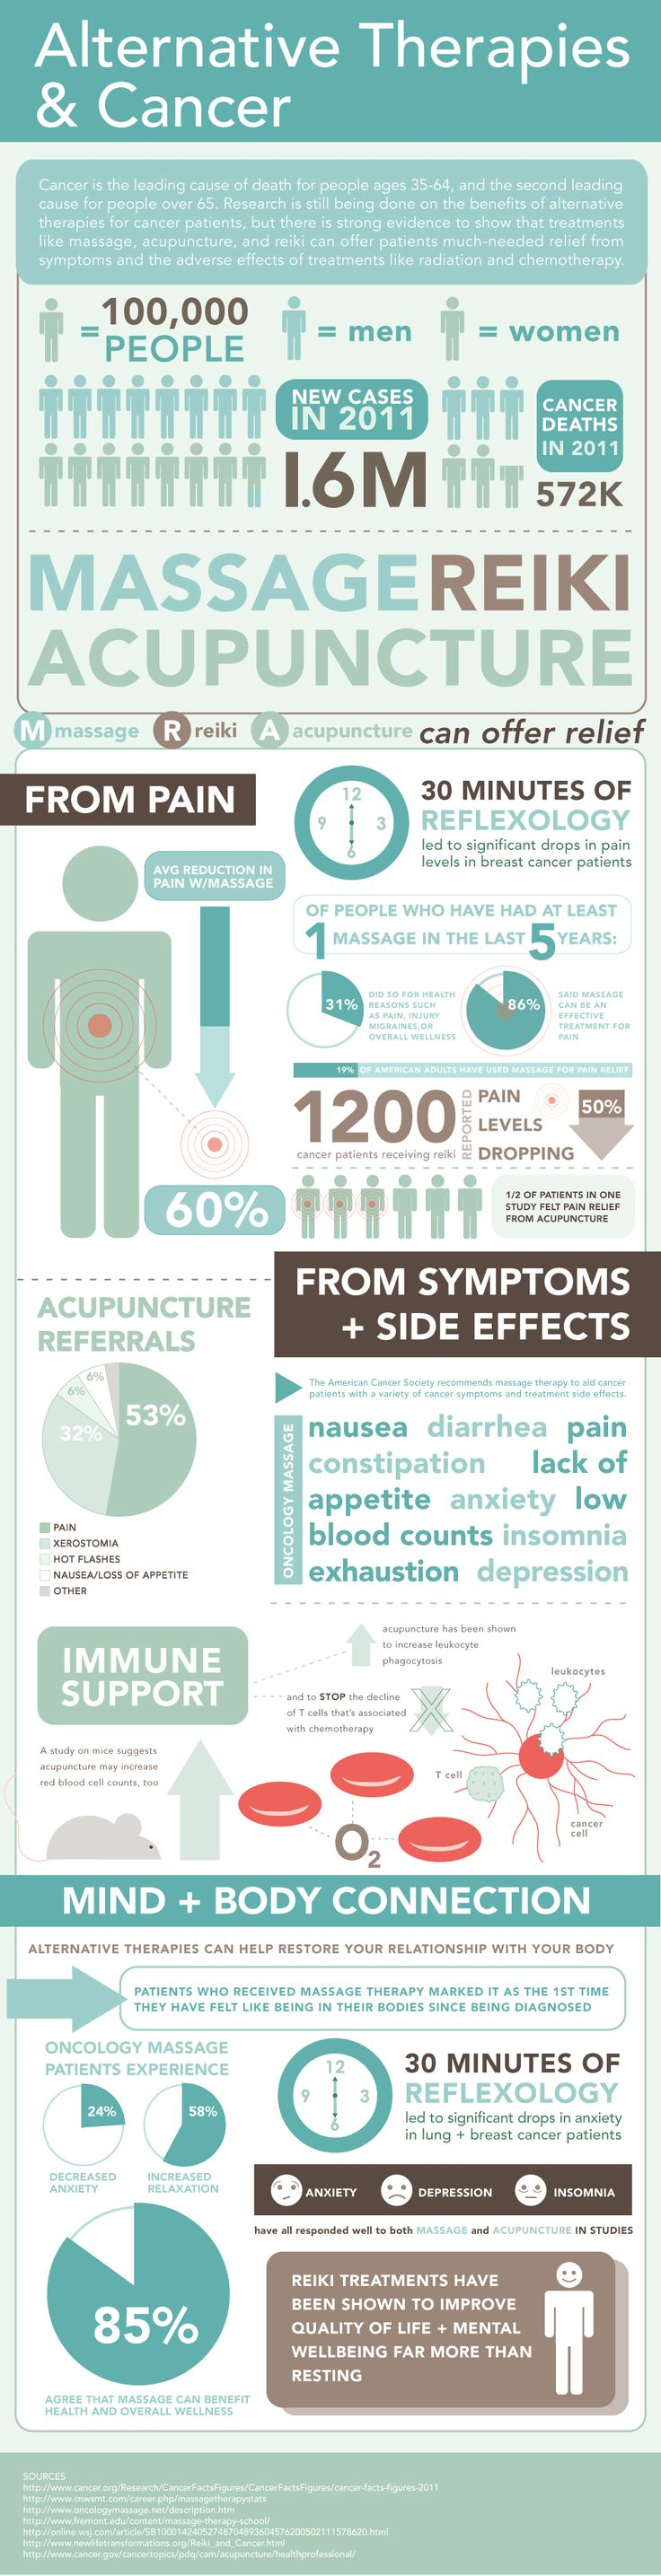 Alternative Therapies & Cancer -- Ever wonder how alternative treatments such as reiki, massage and acupuncture have assisted healing for cancer patients? Take a look at the infographic below to learn more about these complementary healing modalities.